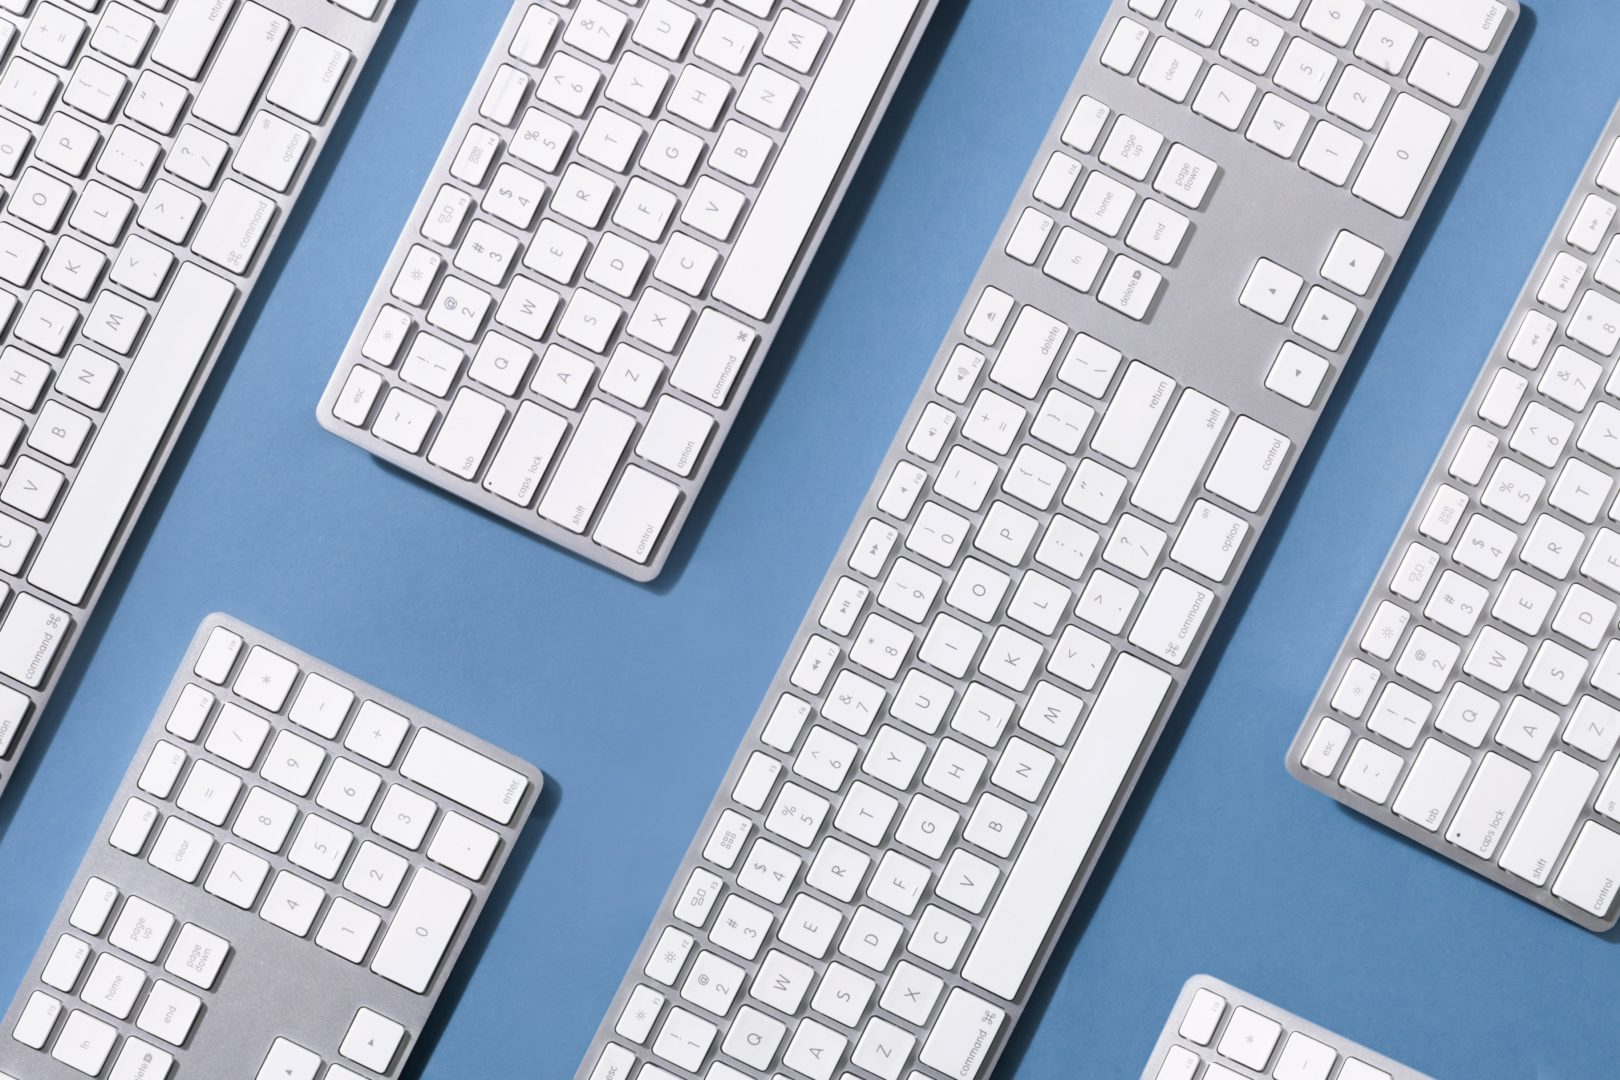 keyboards-on-blue-surface